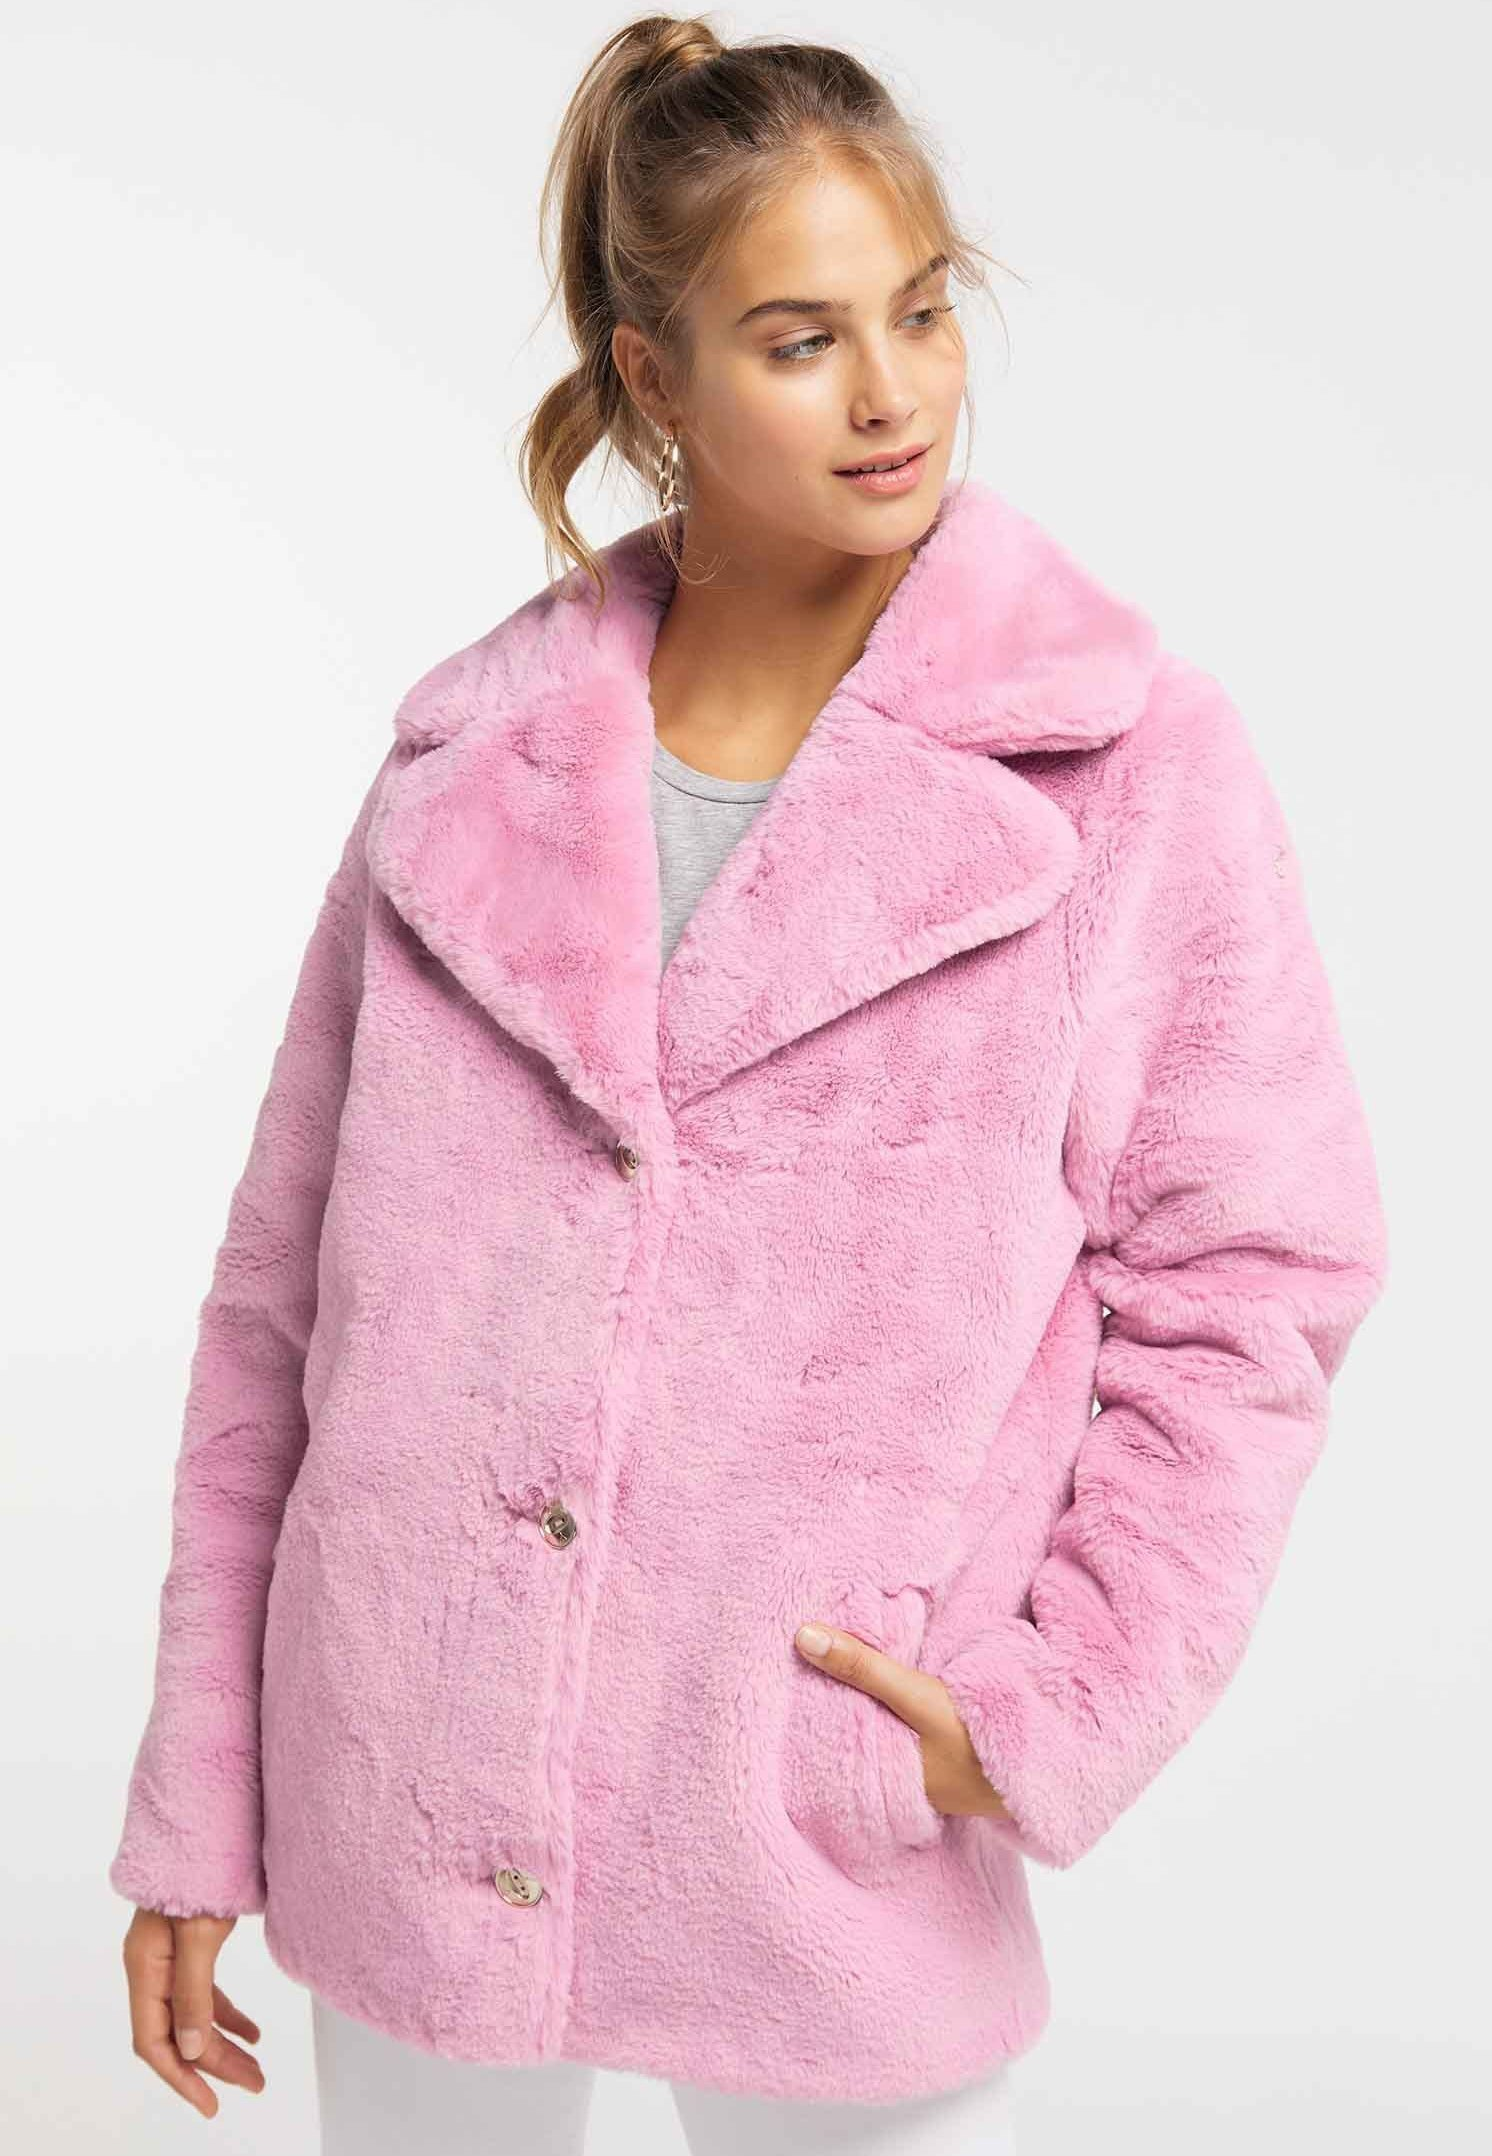 Mymo Rose Mymo Invernale Rose Cappotto Mymo Cappotto Invernale FKlc3T1J